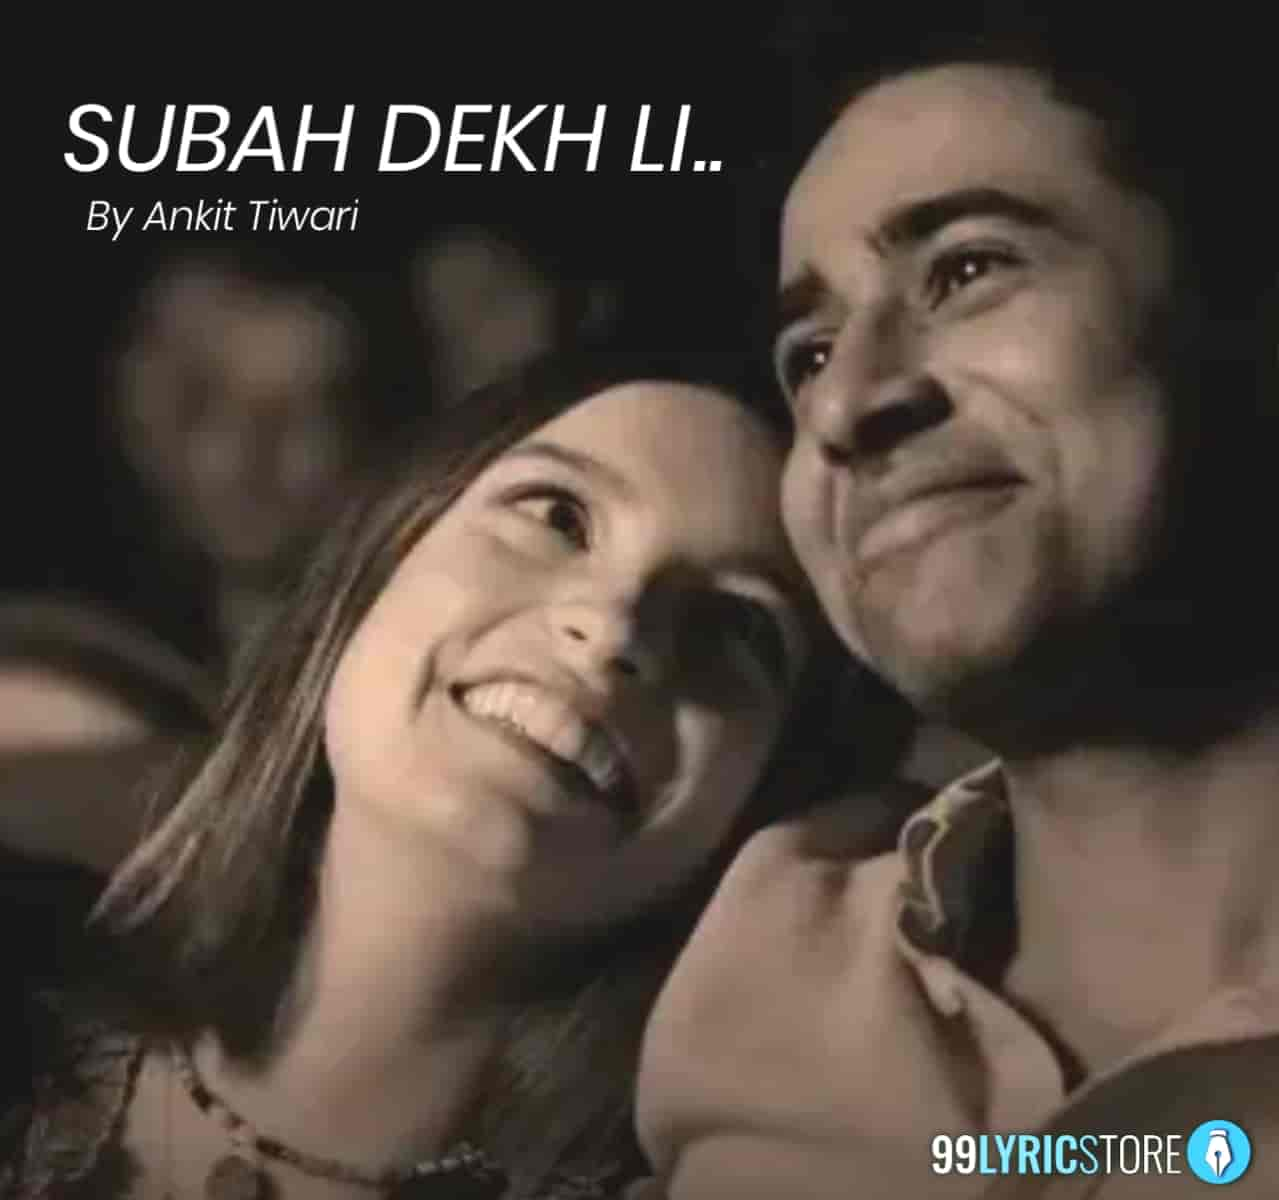 Subah Dekh Li Lyrics :- Ankit Tiwari given soulful voice in a very beautiful song Subah Dekh Li from Academy winning Life of Pi star Suraj Sharma starrer movie The Illegal. Music of this song given by Eric Neveux while this beautiful song Subah Dekh Li lyrics has penned by Sunayana Kachroo. This song is presented by Times Music label.